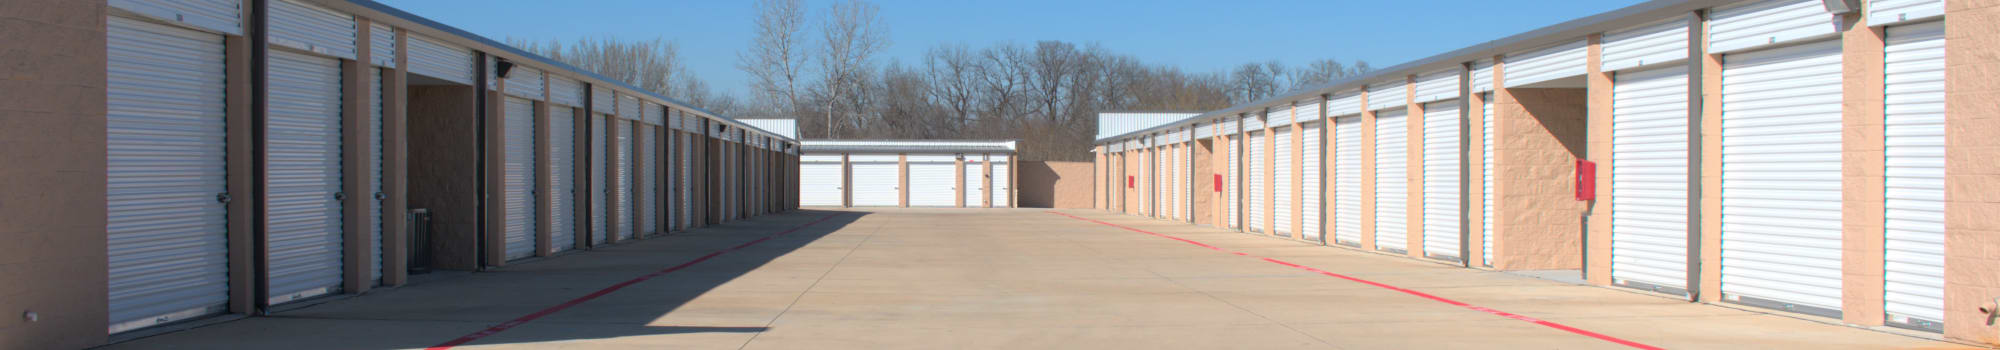 Unit sizes & prices at Storage 365 in Garland, Texas